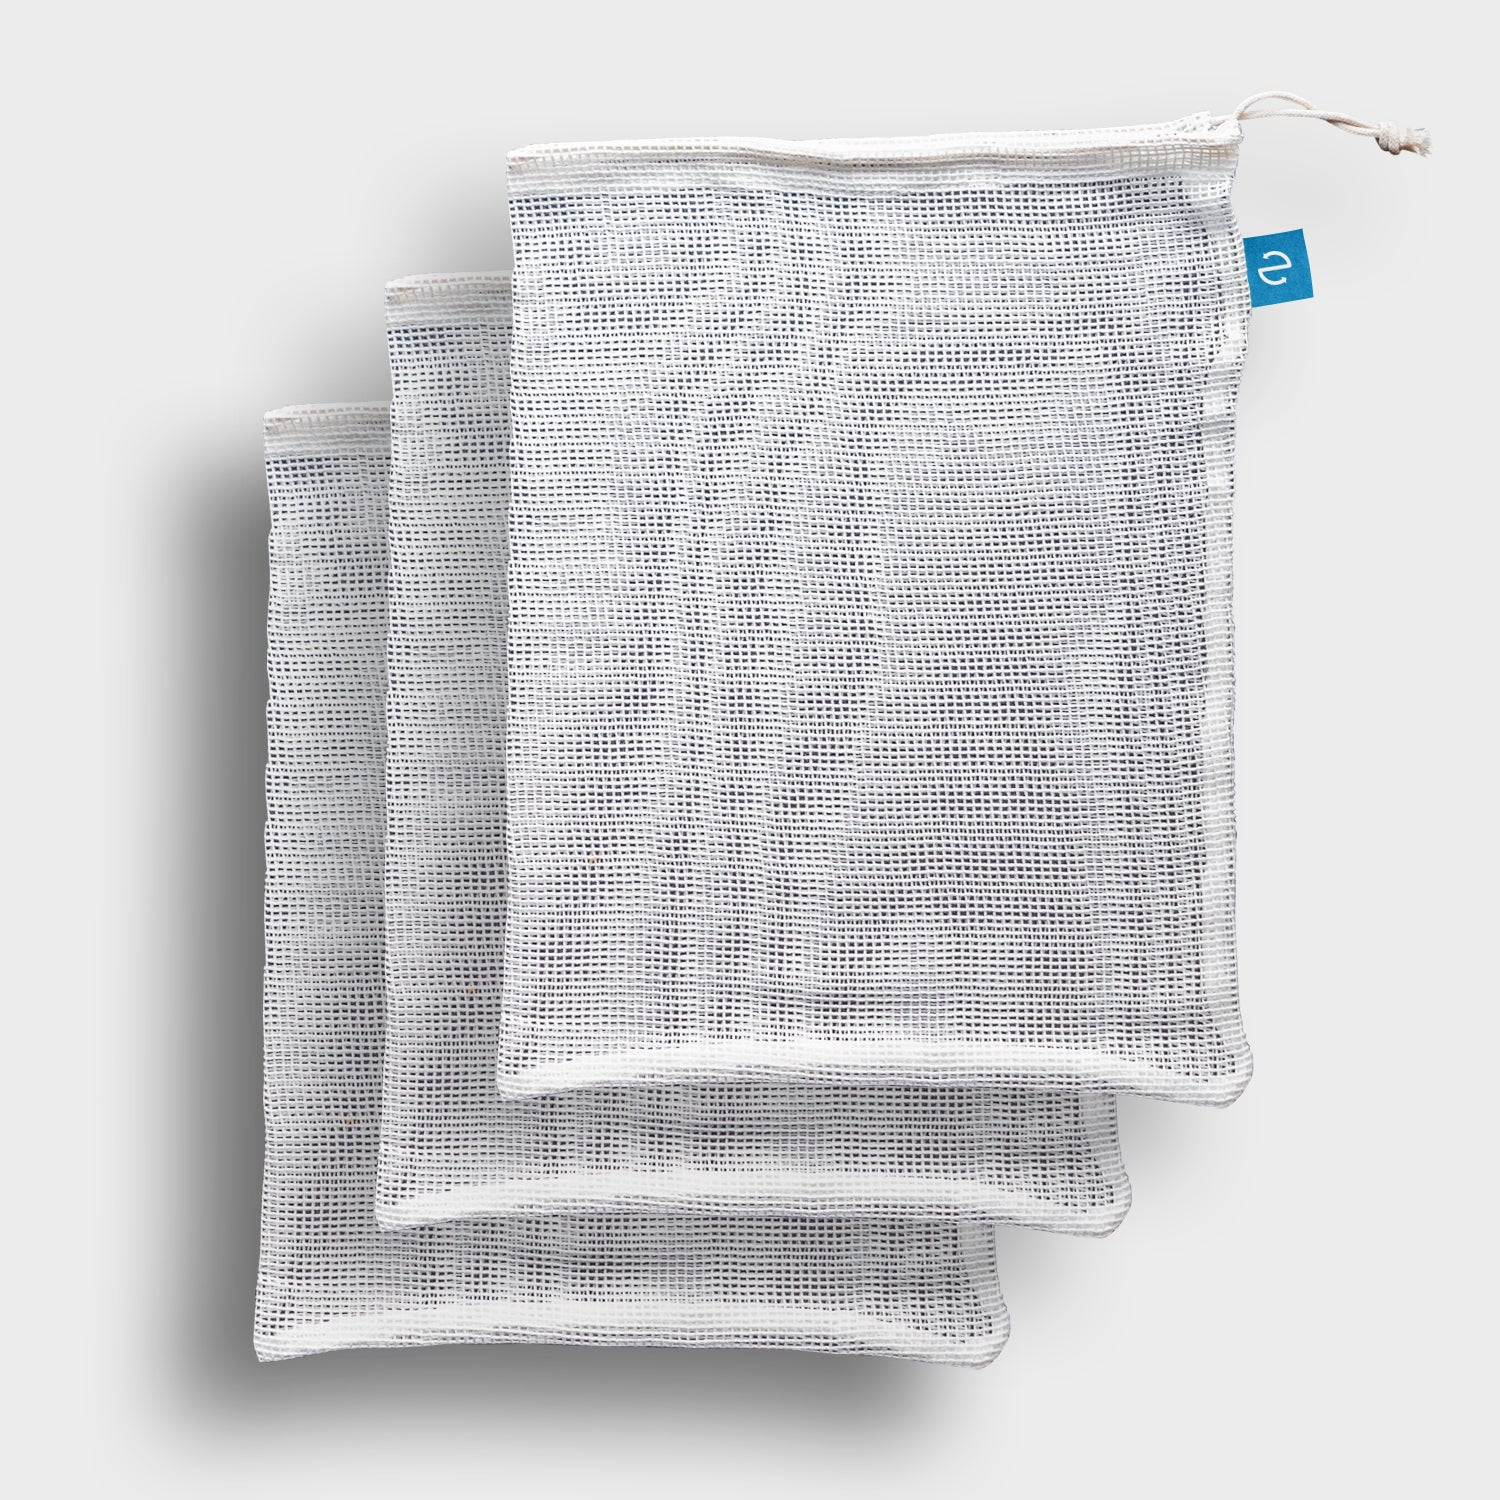 Stack of three cotton mesh produce bags with blue icon logo